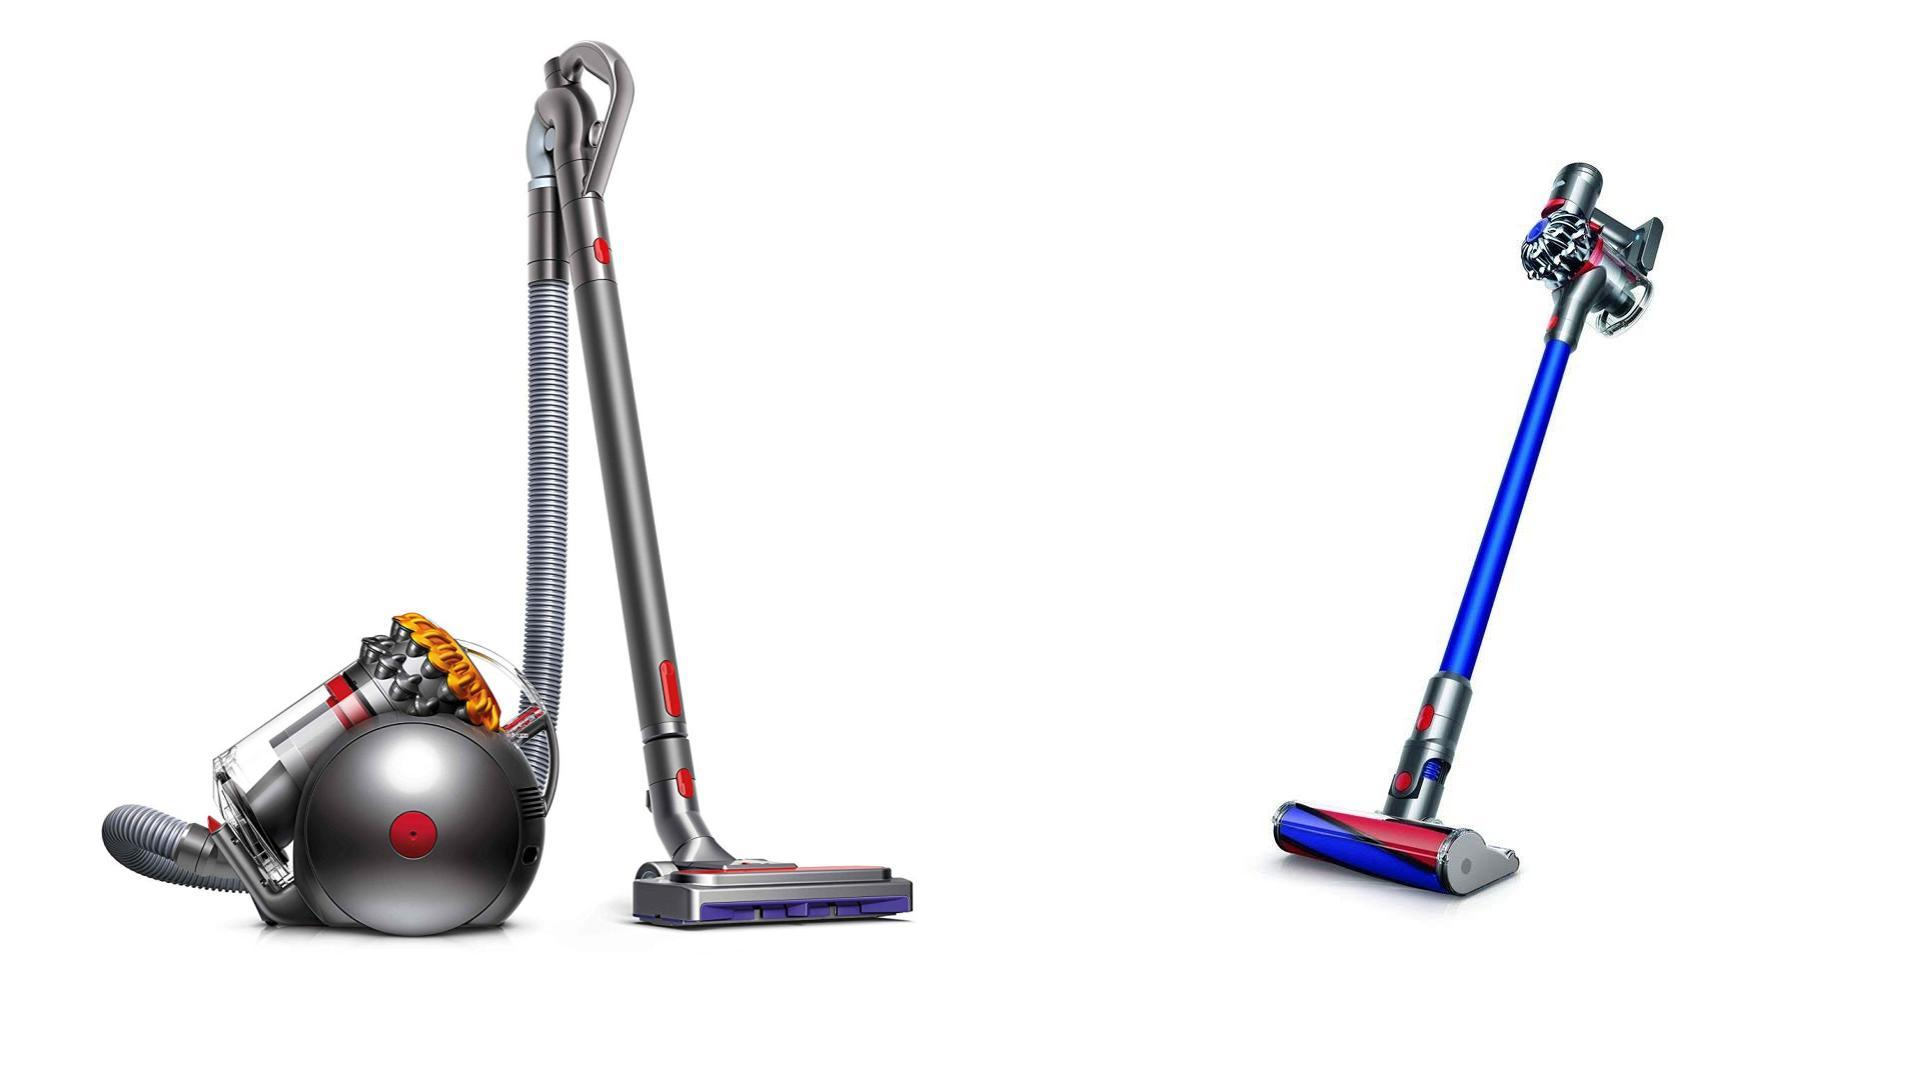 🔥 Black Friday : des aspirateurs Dyson à partir de 229 euros chez Amazon